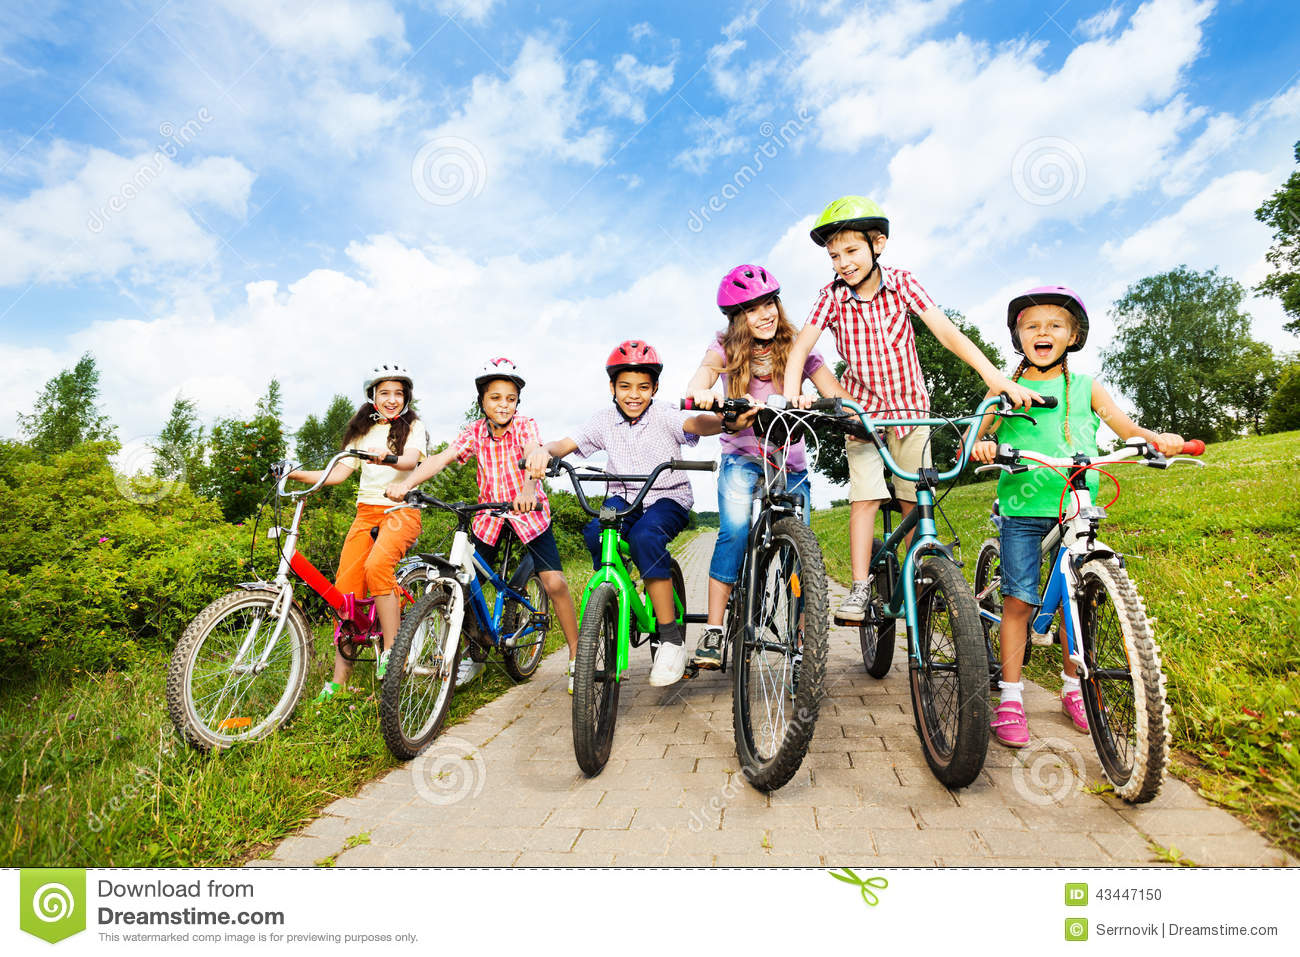 ... holding bike handle-bars and are ready to ride their bikes in summer